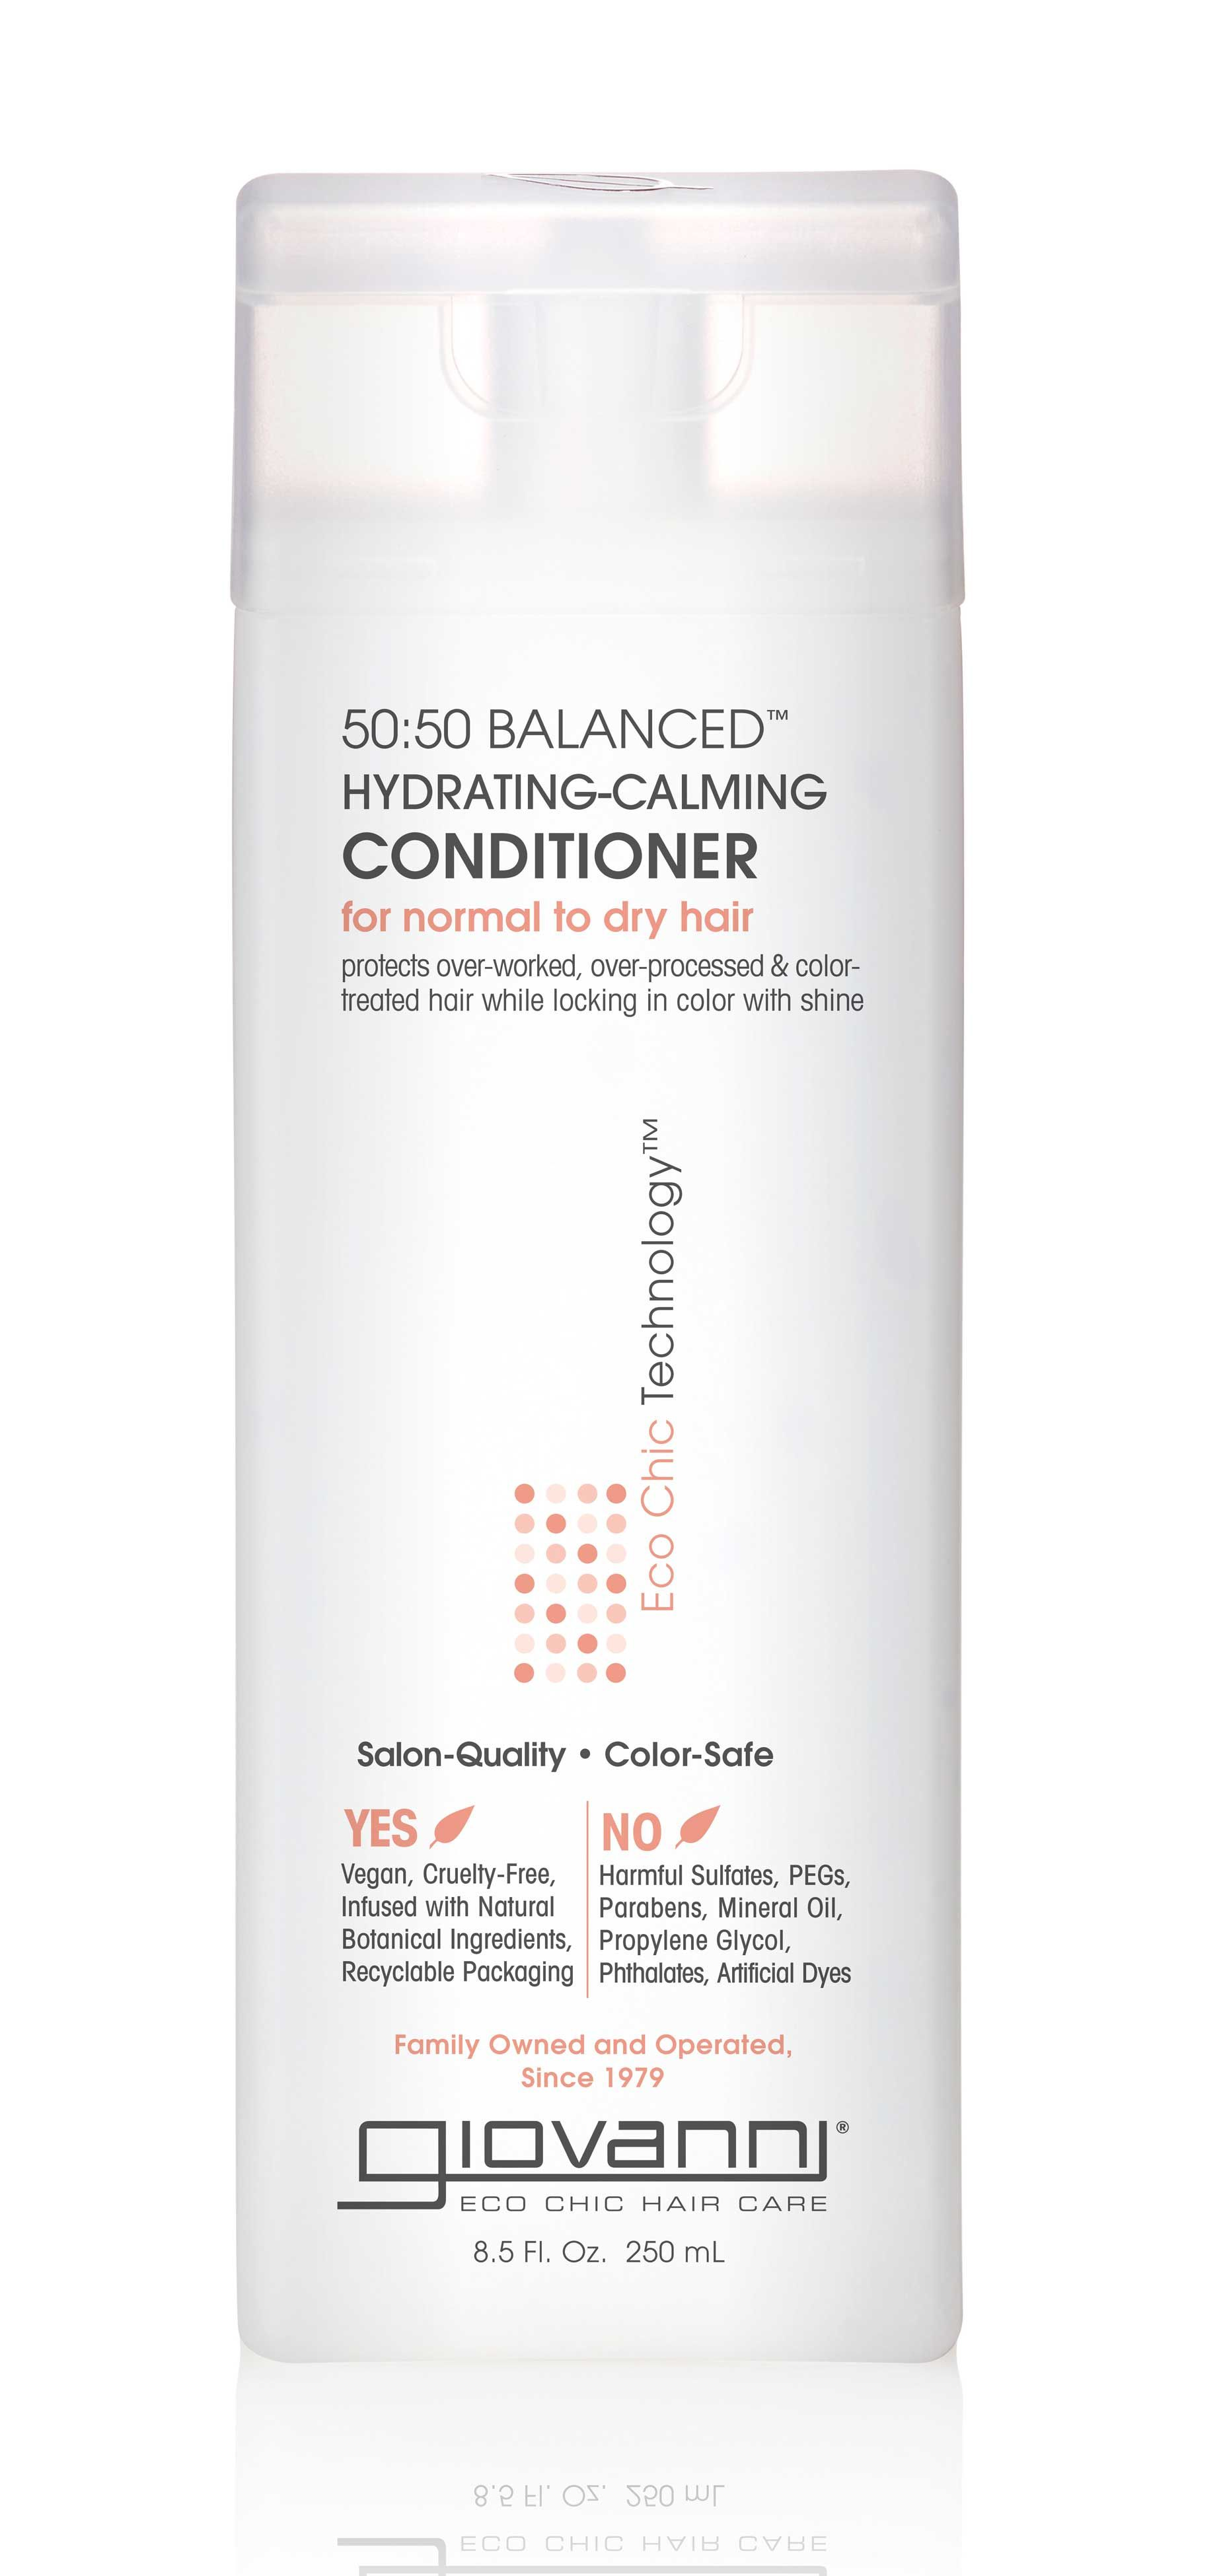 50 50 Balanced Hydrating Calming Conditioner 3 Sizes How To Treat Acne Eye Sight Improvement Dry Hair